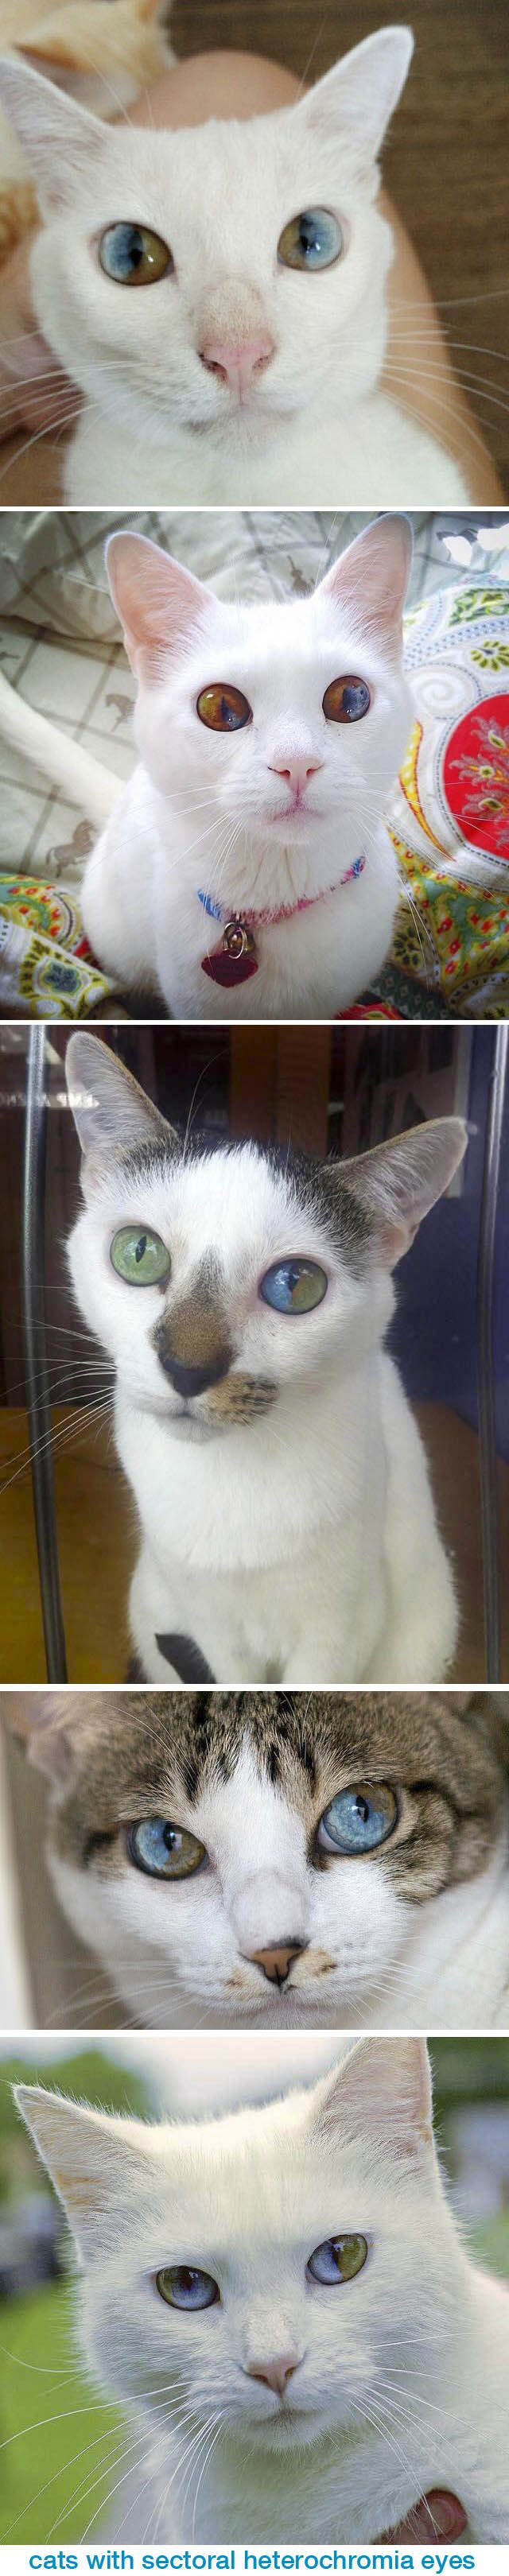 These gorgeous cats have eyes where each has two different colors, a condition referred to as sectoral heterochromia, where the iris contains two completely different colors in the same area. This is unlike typical odd-eyed cats who have complete heterochromia, where one iris is a different color from the other. Cats with heterochromia are usually white or white-spotted. These kitties are undoubtedly some of the most fascinating-looking creatures on the planet! : via: lovemeow.com